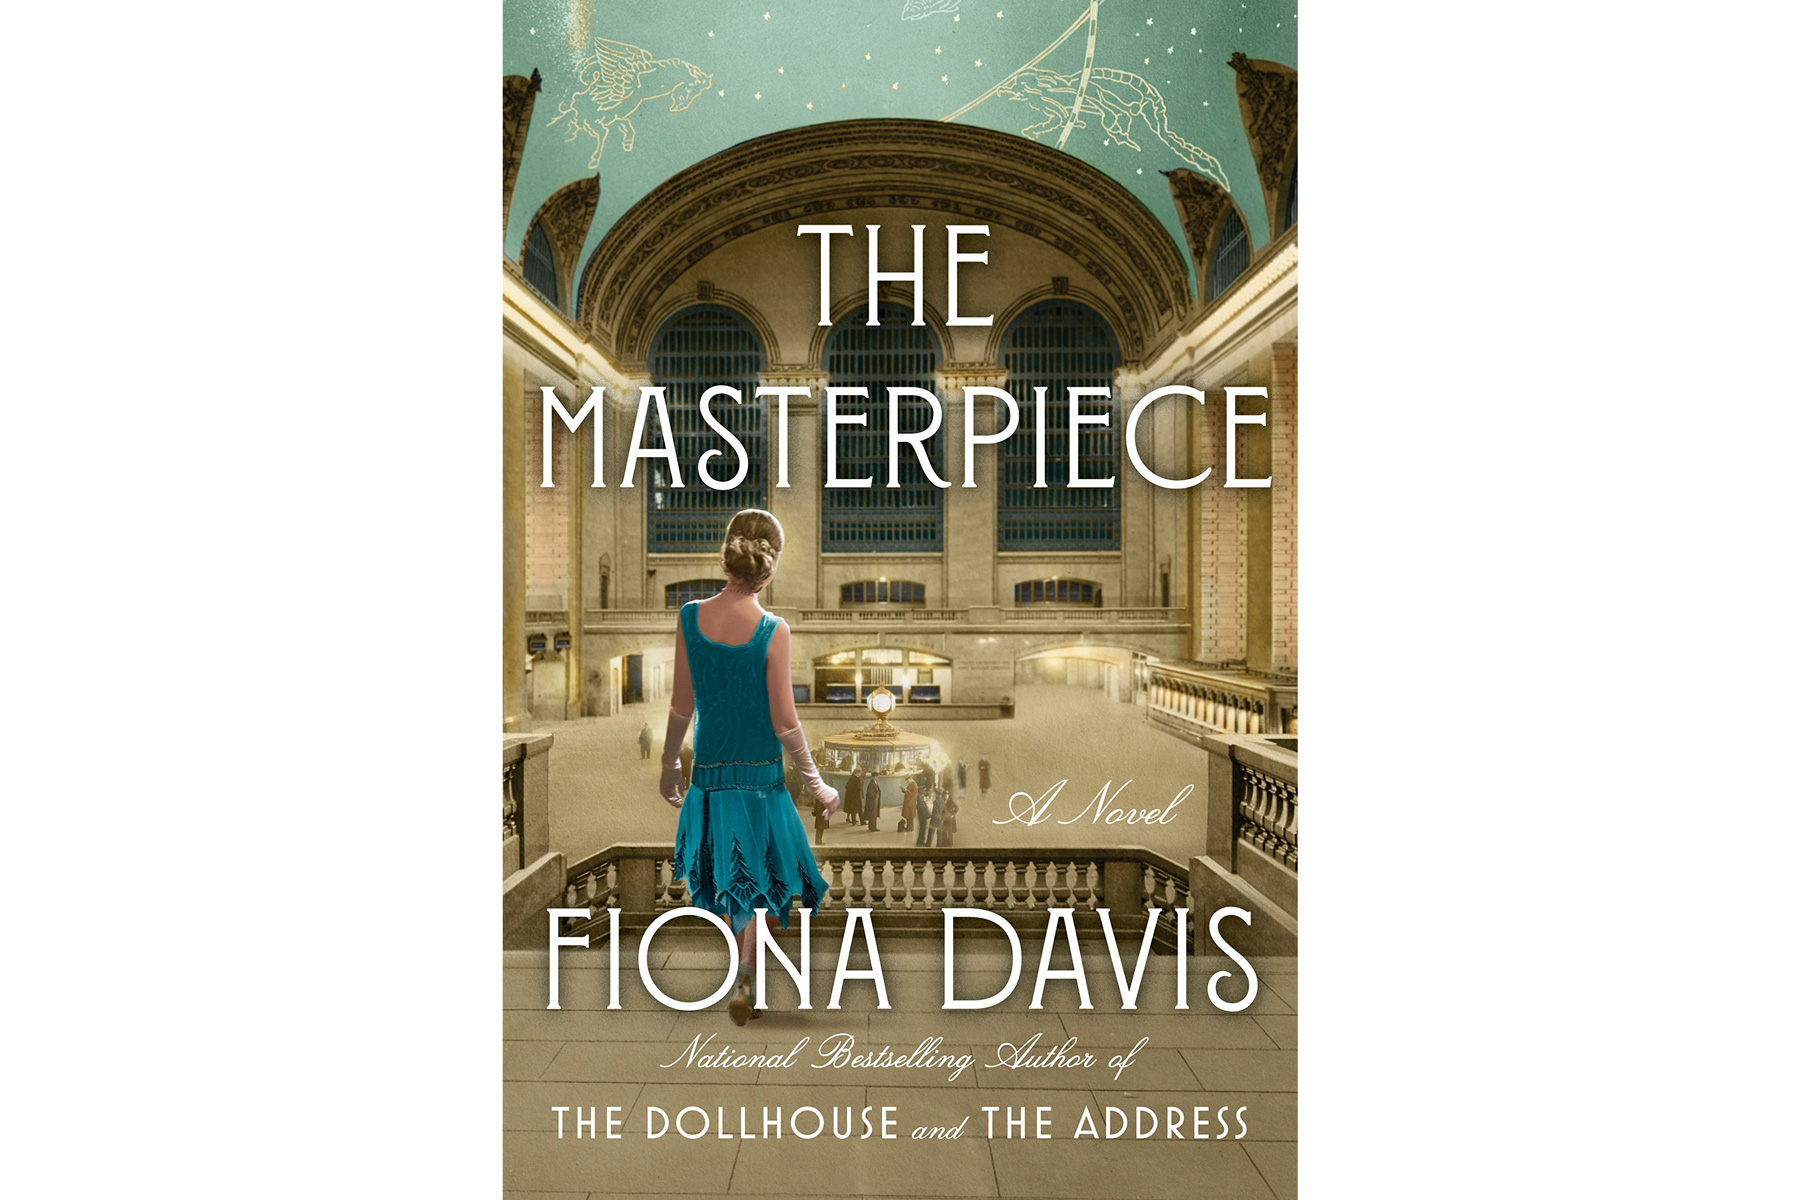 Best Books 2018 The Masterpiece, by Fiona Davis